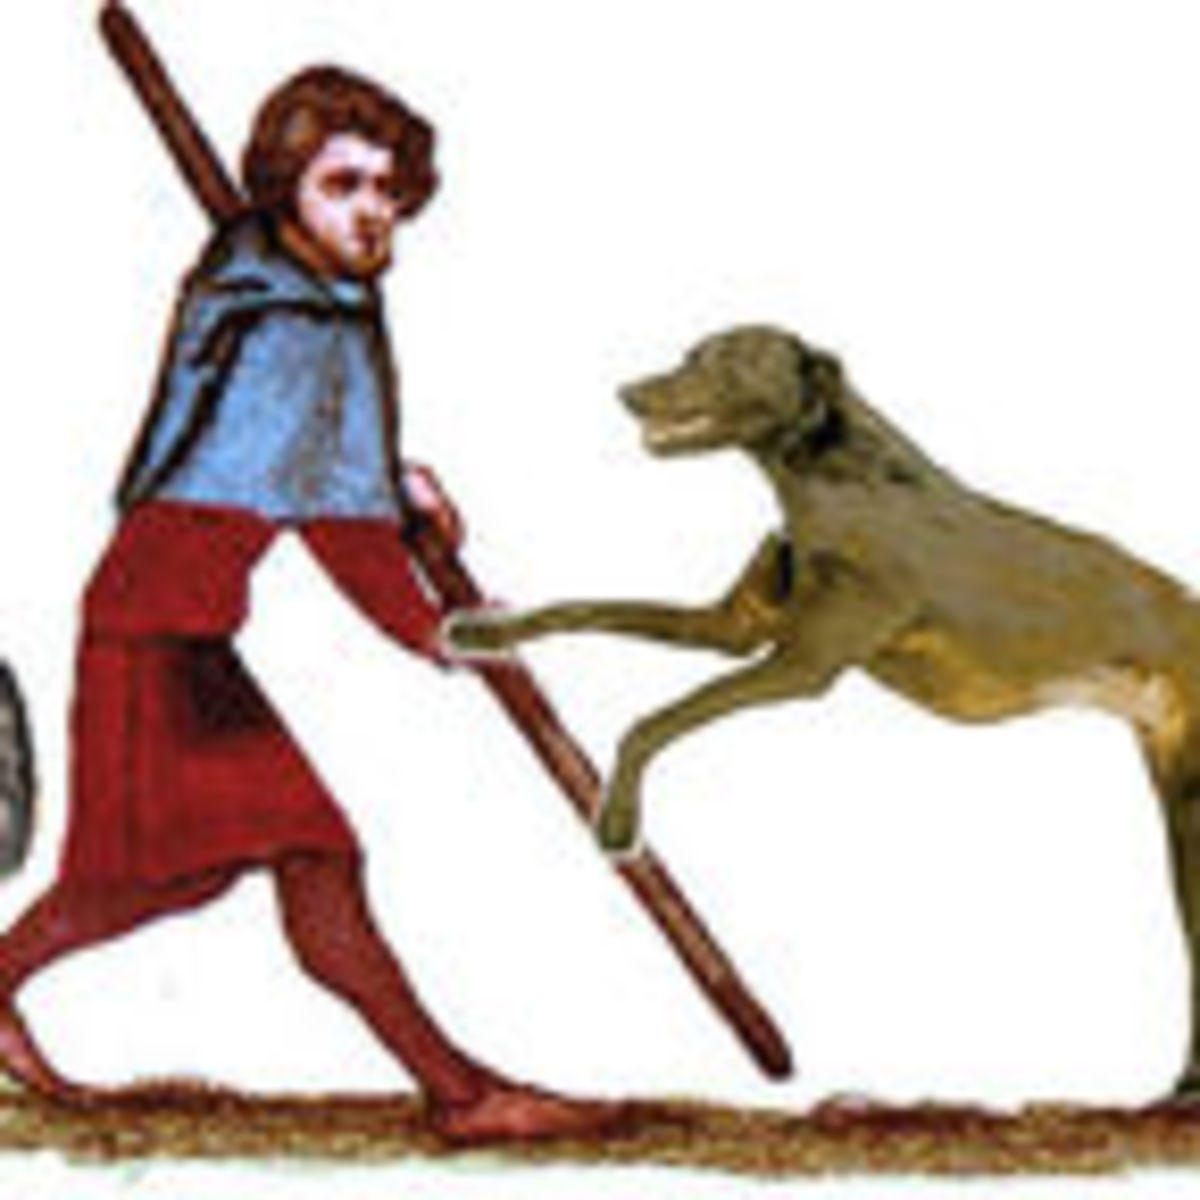 A Murder and a Dog Seeking Justice | Psychology Today South